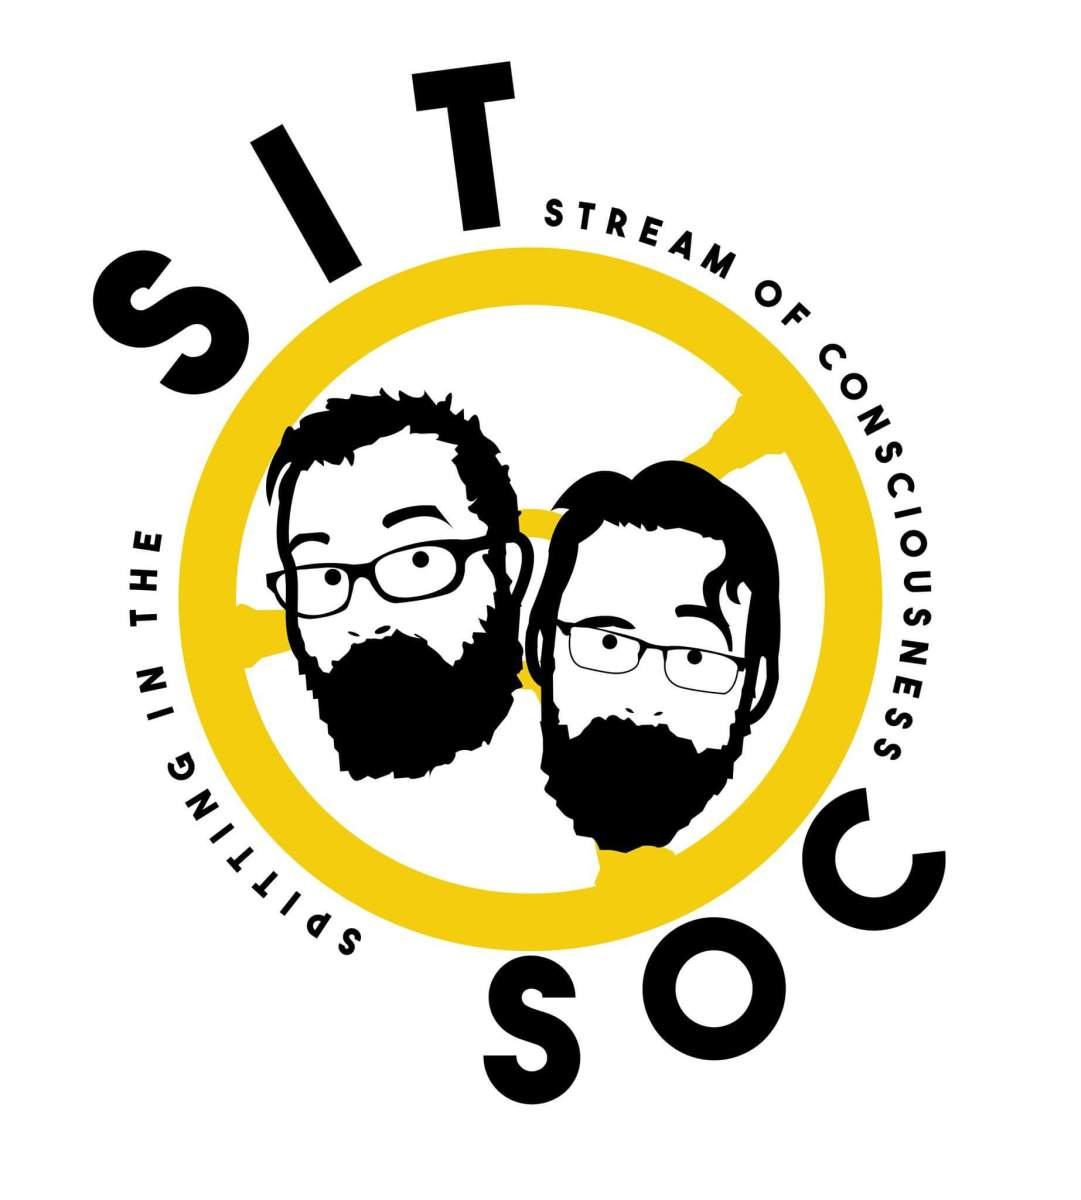 SitSoC Episode 85: Can you disagree without providing an Alternative